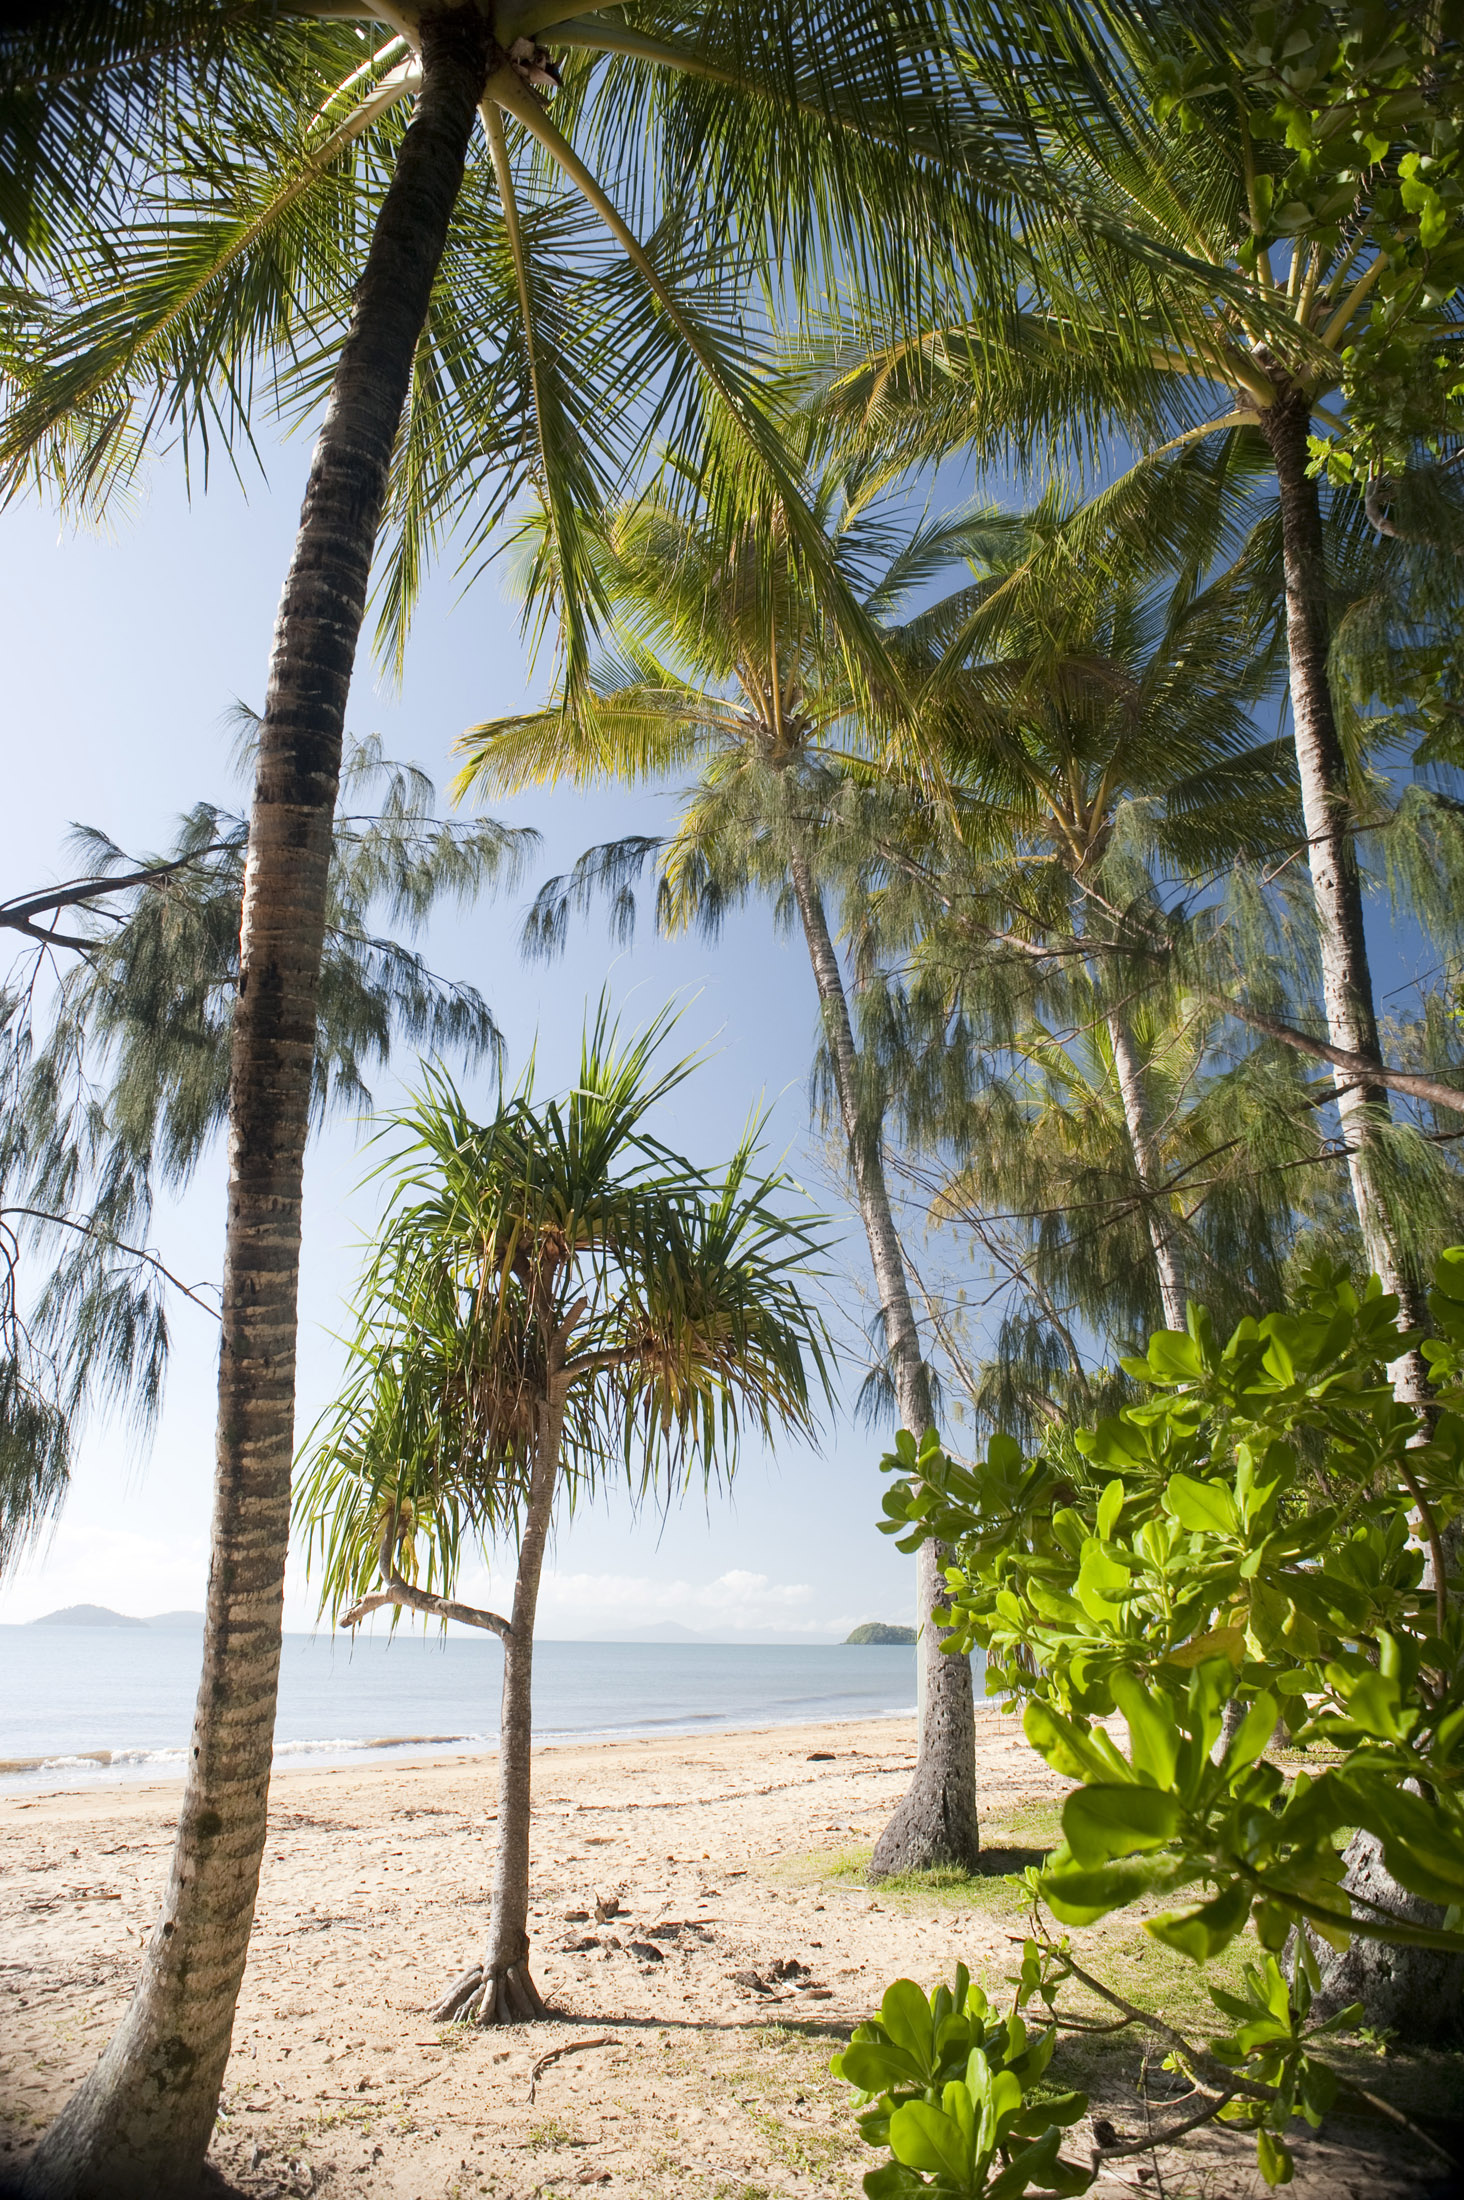 looking out from lush tropical vegetation to a sandy beach and warm tropical waters beyond